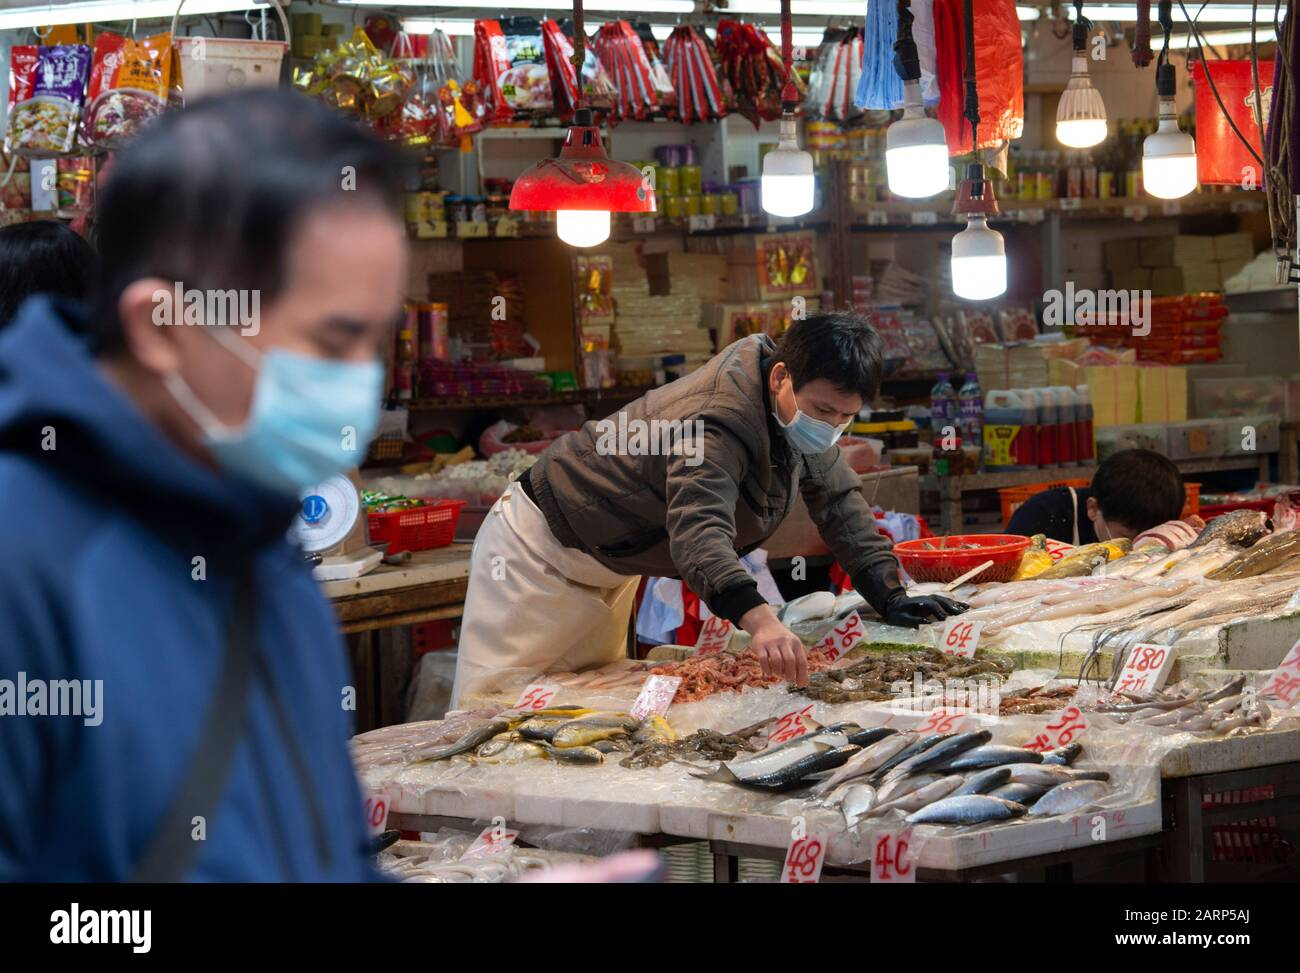 Hong Kong, China. 29th Jan, 2020. Fear of the 2019 Novel Coronavirus from Wuhan China is evident on the streets of Hong Kong. A North point market fishmonger a surgical mask. Credit: Jayne Russell/Alamy Live News Stock Photo